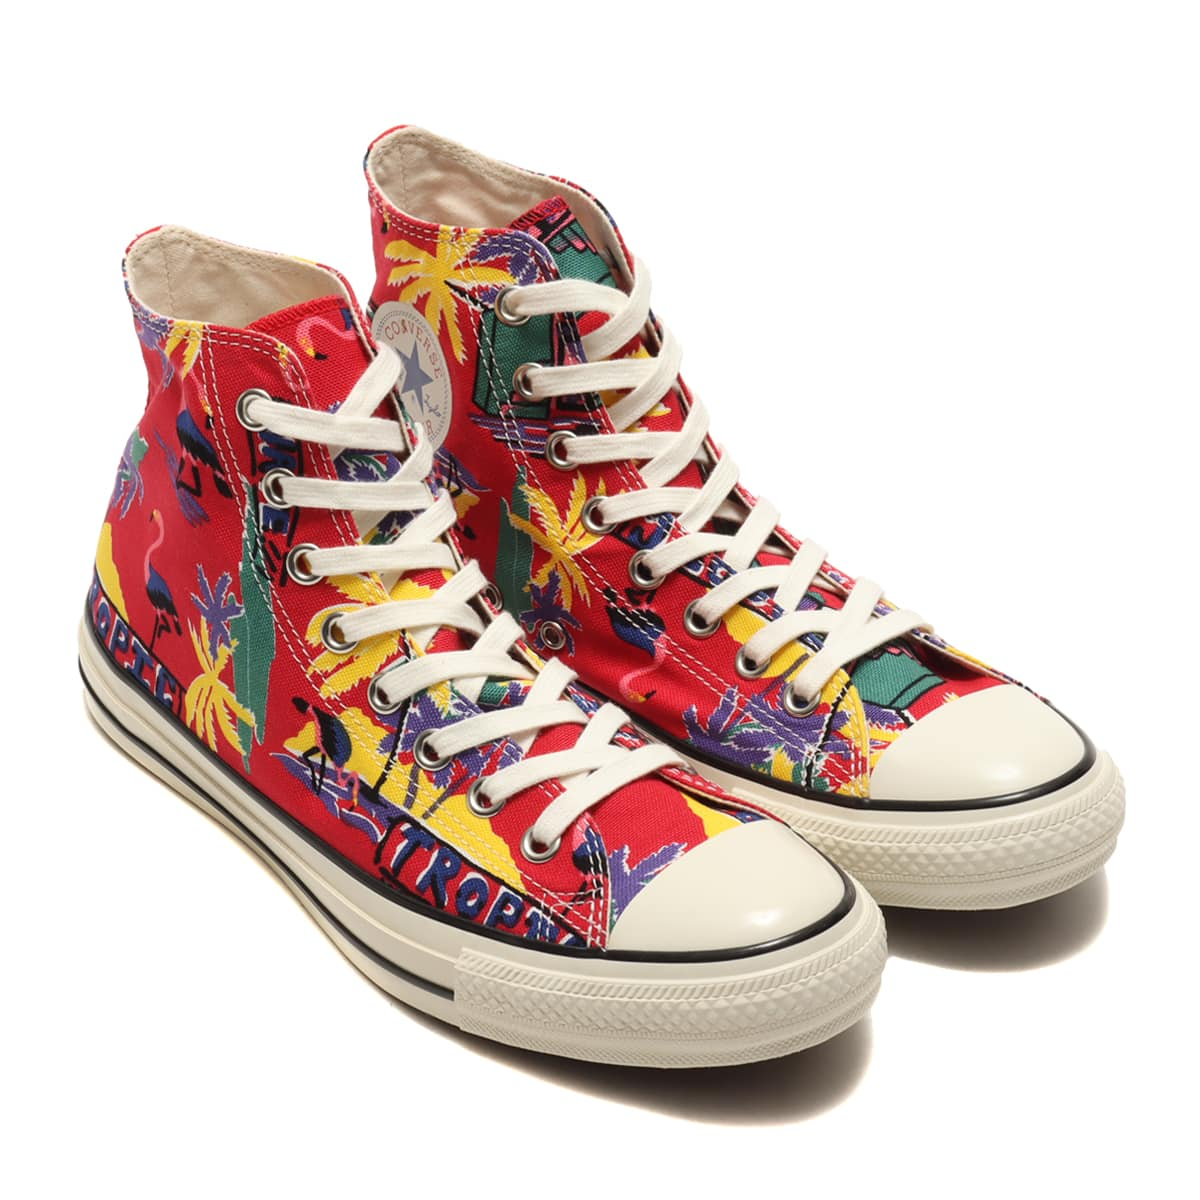 CONVERSE ALL STAR US RETROPACIFIC HI RED 21SS-I_photo_large